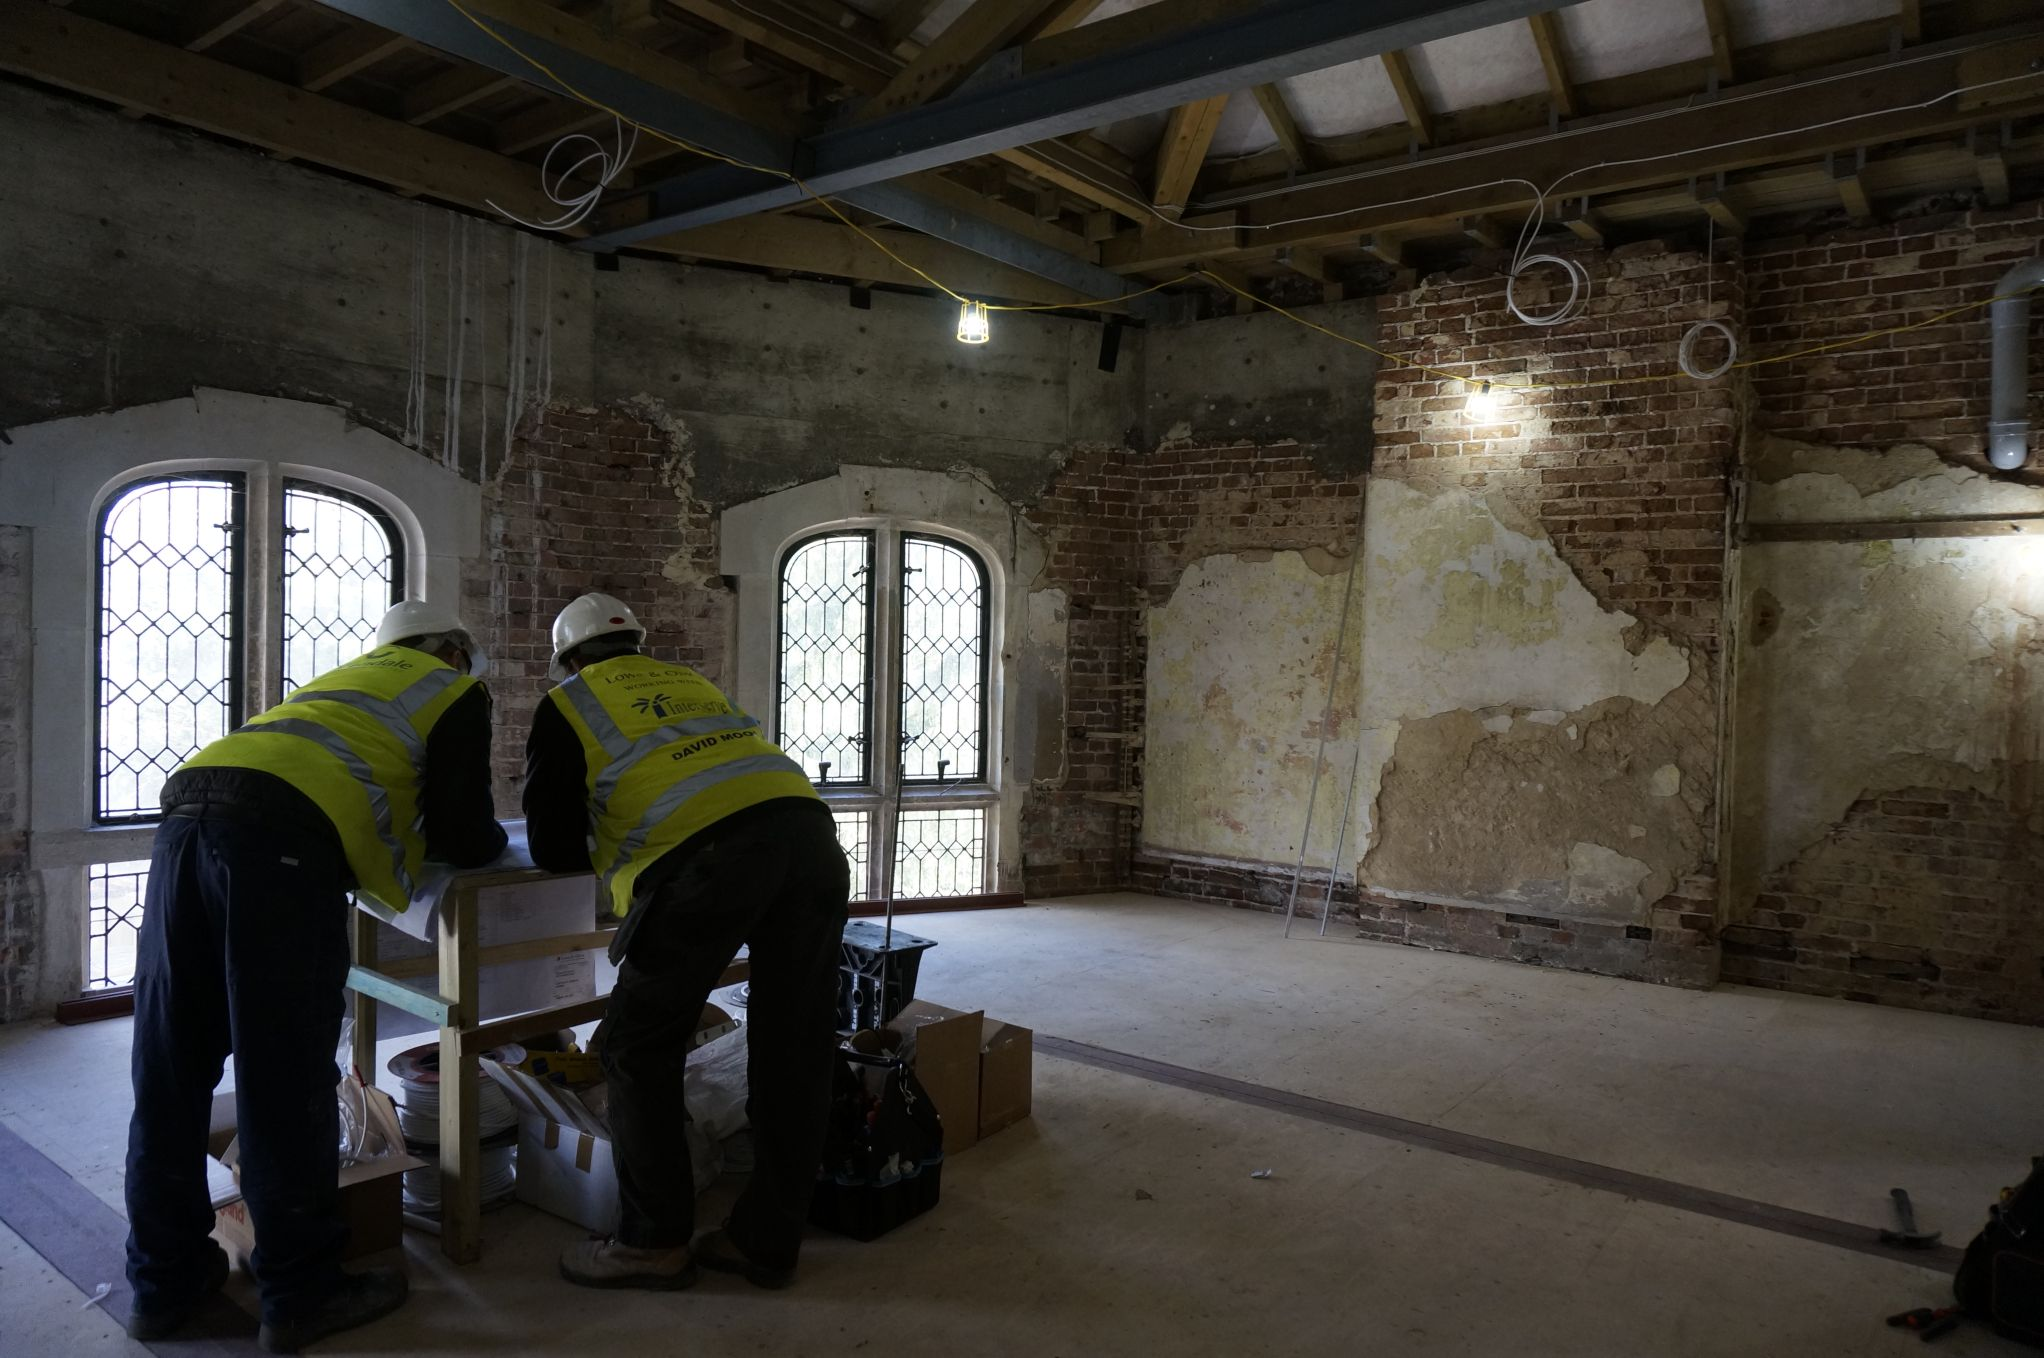 Two men in high vis jackets and hard hats looking over a plan standing in room with exposed brickwork and arched windows.